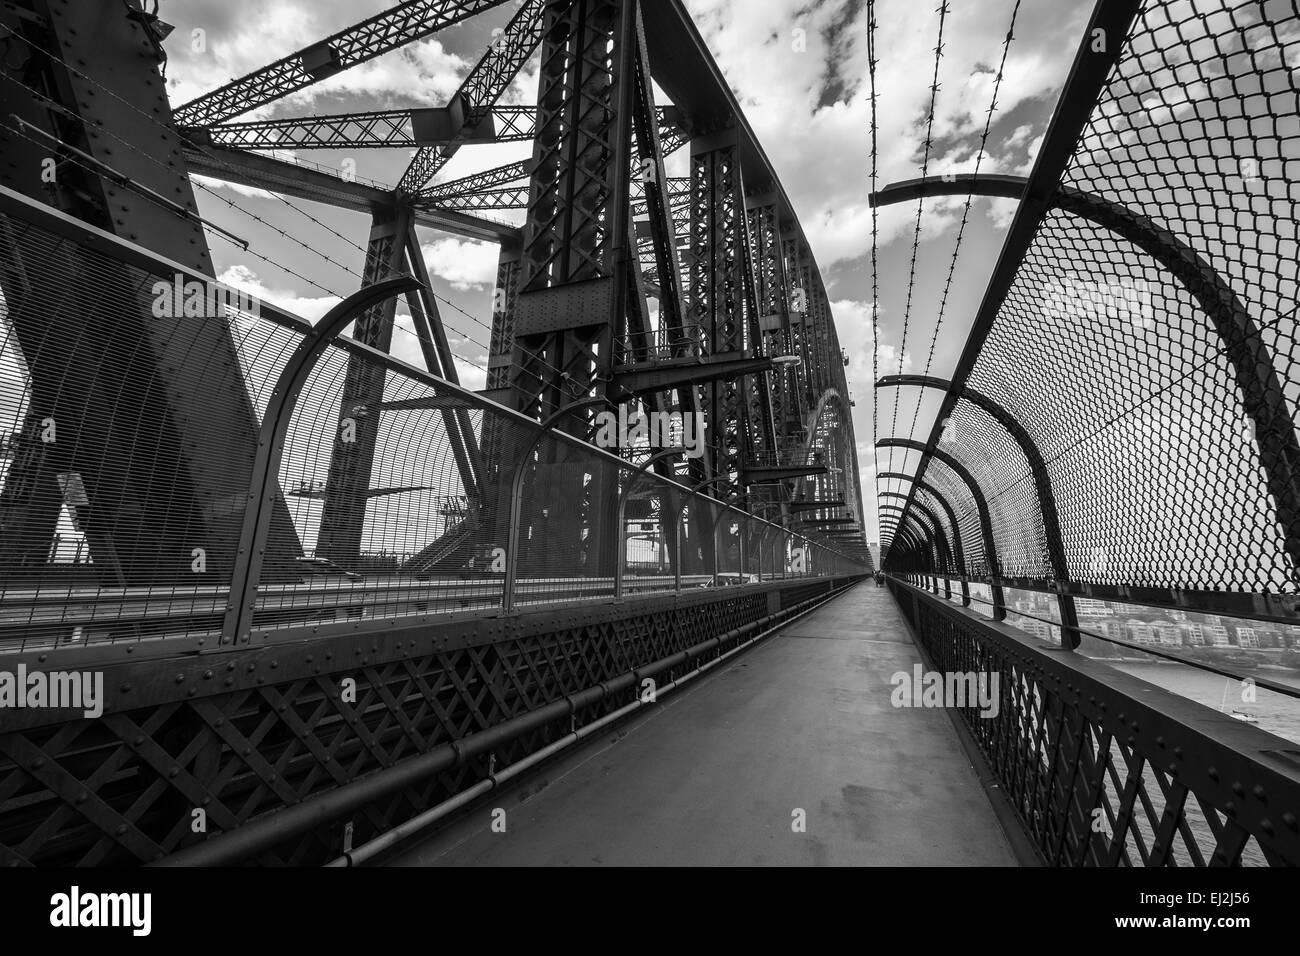 SYDNEY, AUSTRALIA - November 23, 2014: Black and white view from the walkway on the famous Sydney Harbour Bridge - Stock Image